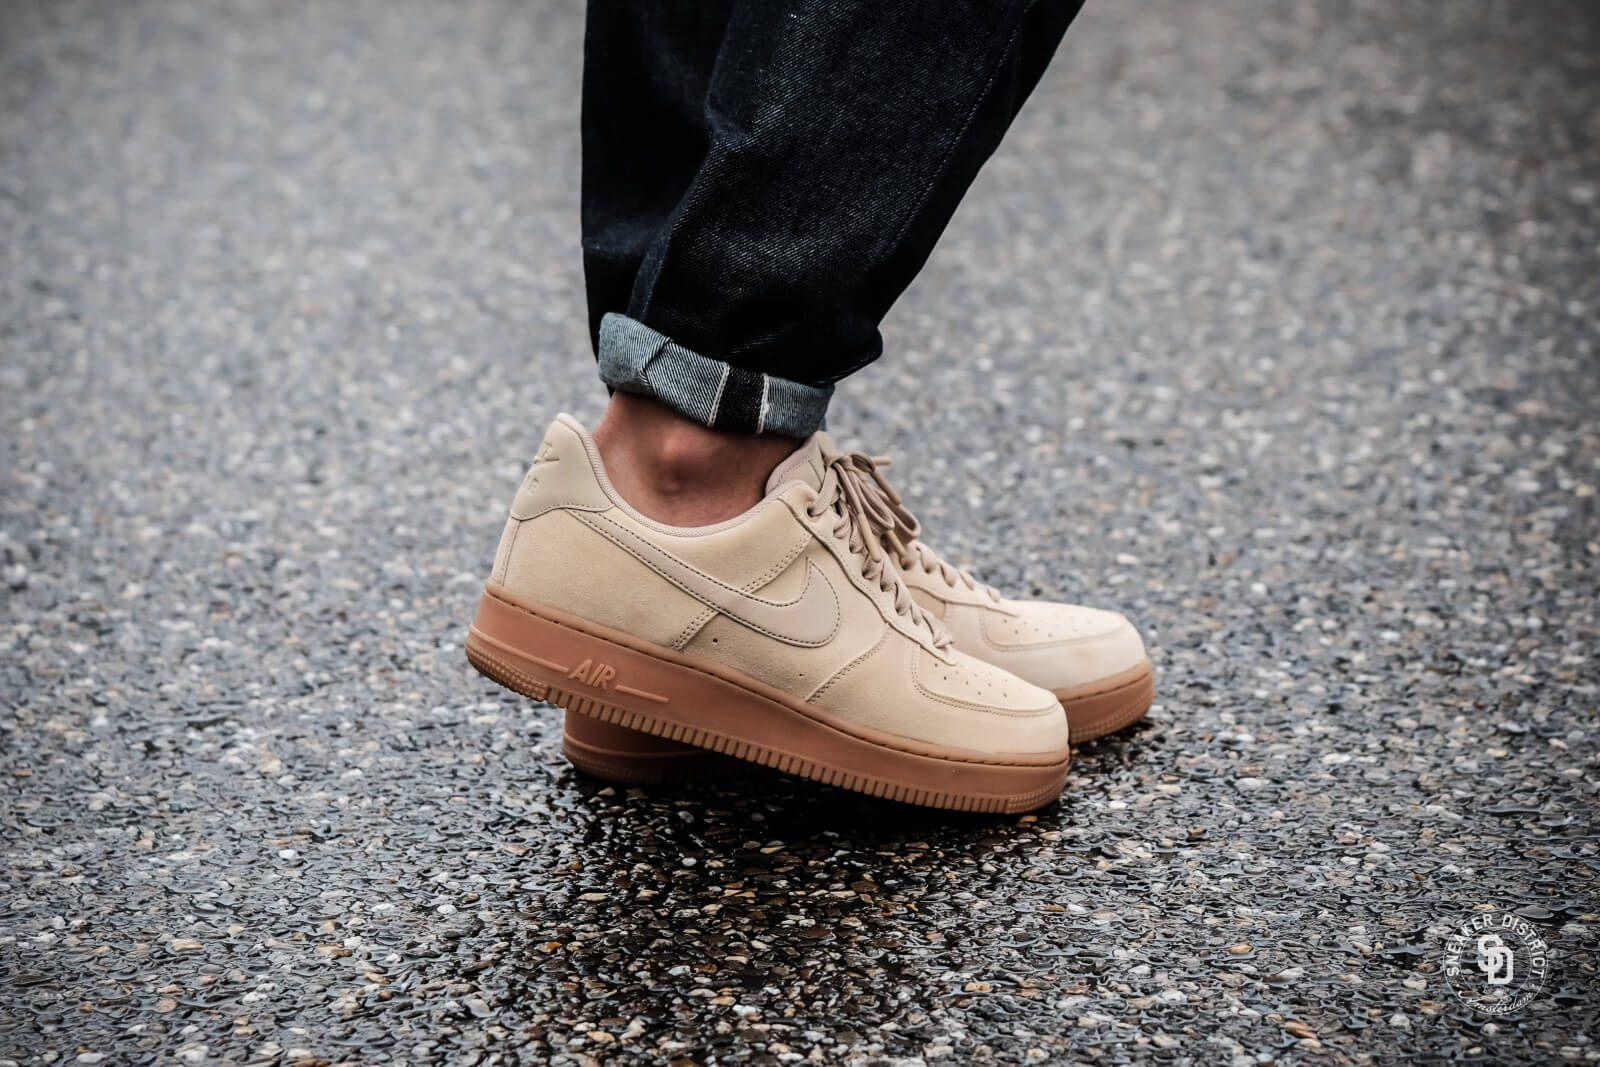 Nike Air Force 1 07 Lv8 Suede Beige Flash Sales, UP TO 70% OFF